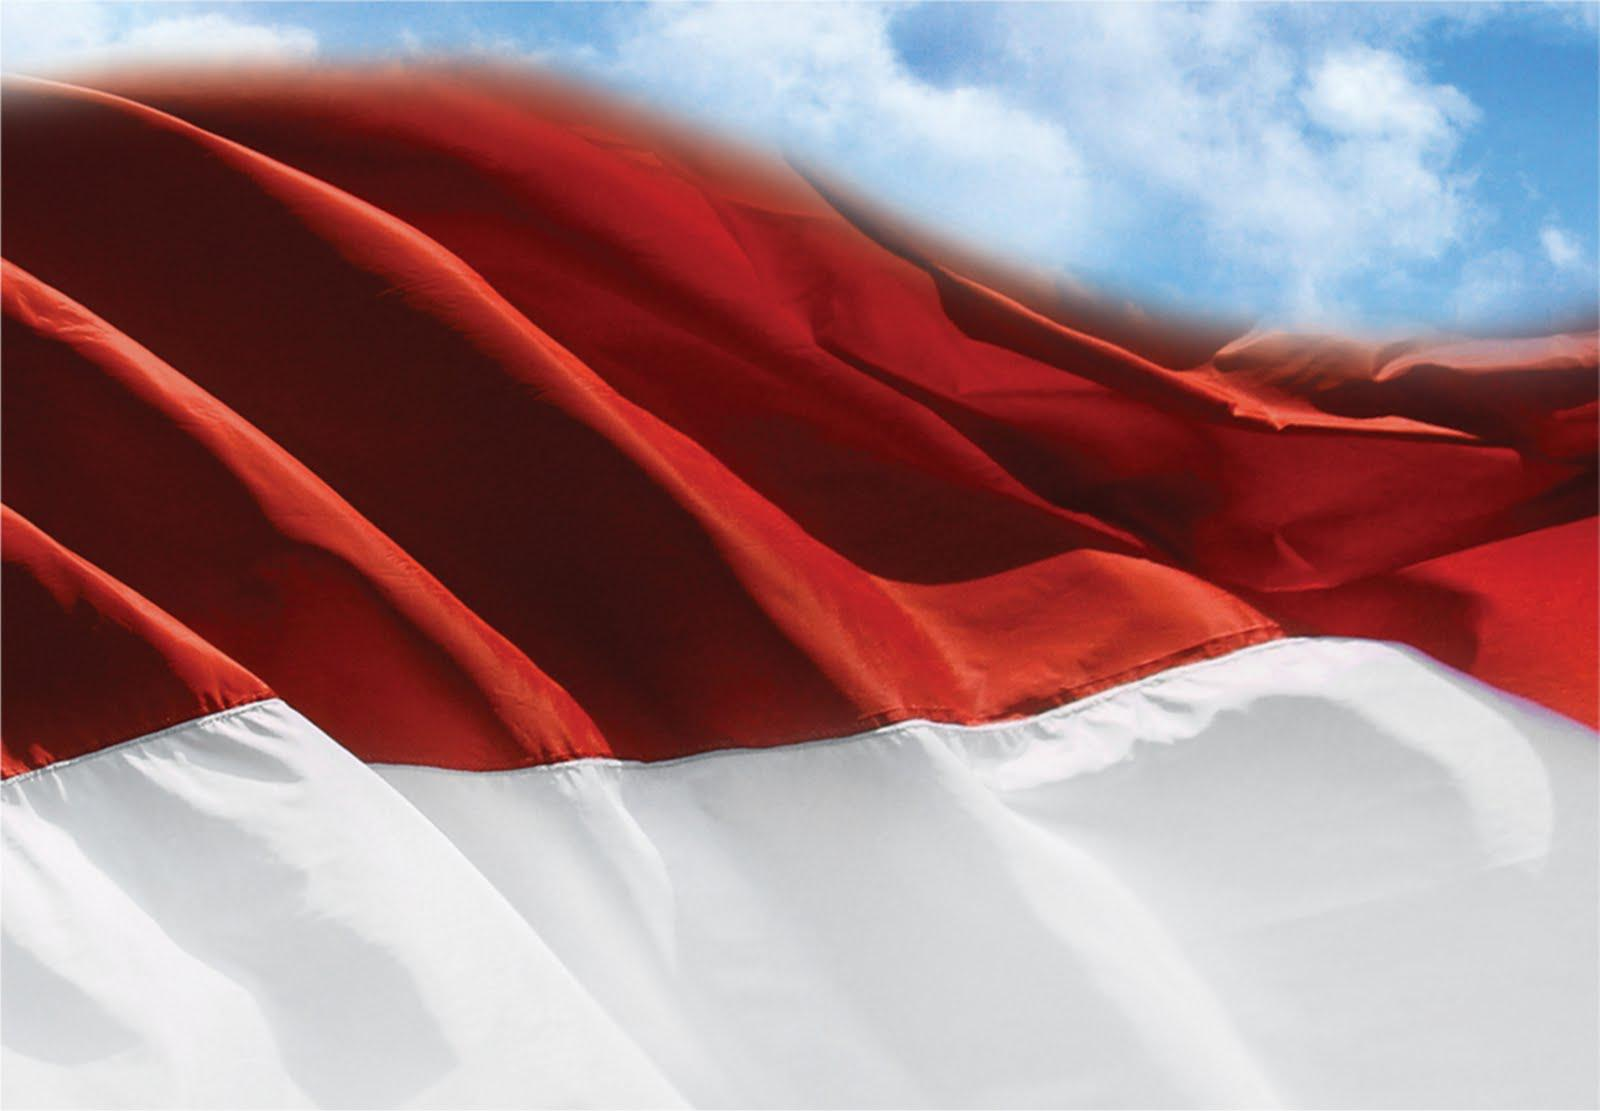 Bendera Merah Putih Wallpaper Hd 20 Wallpapers Adorable Wallpapers